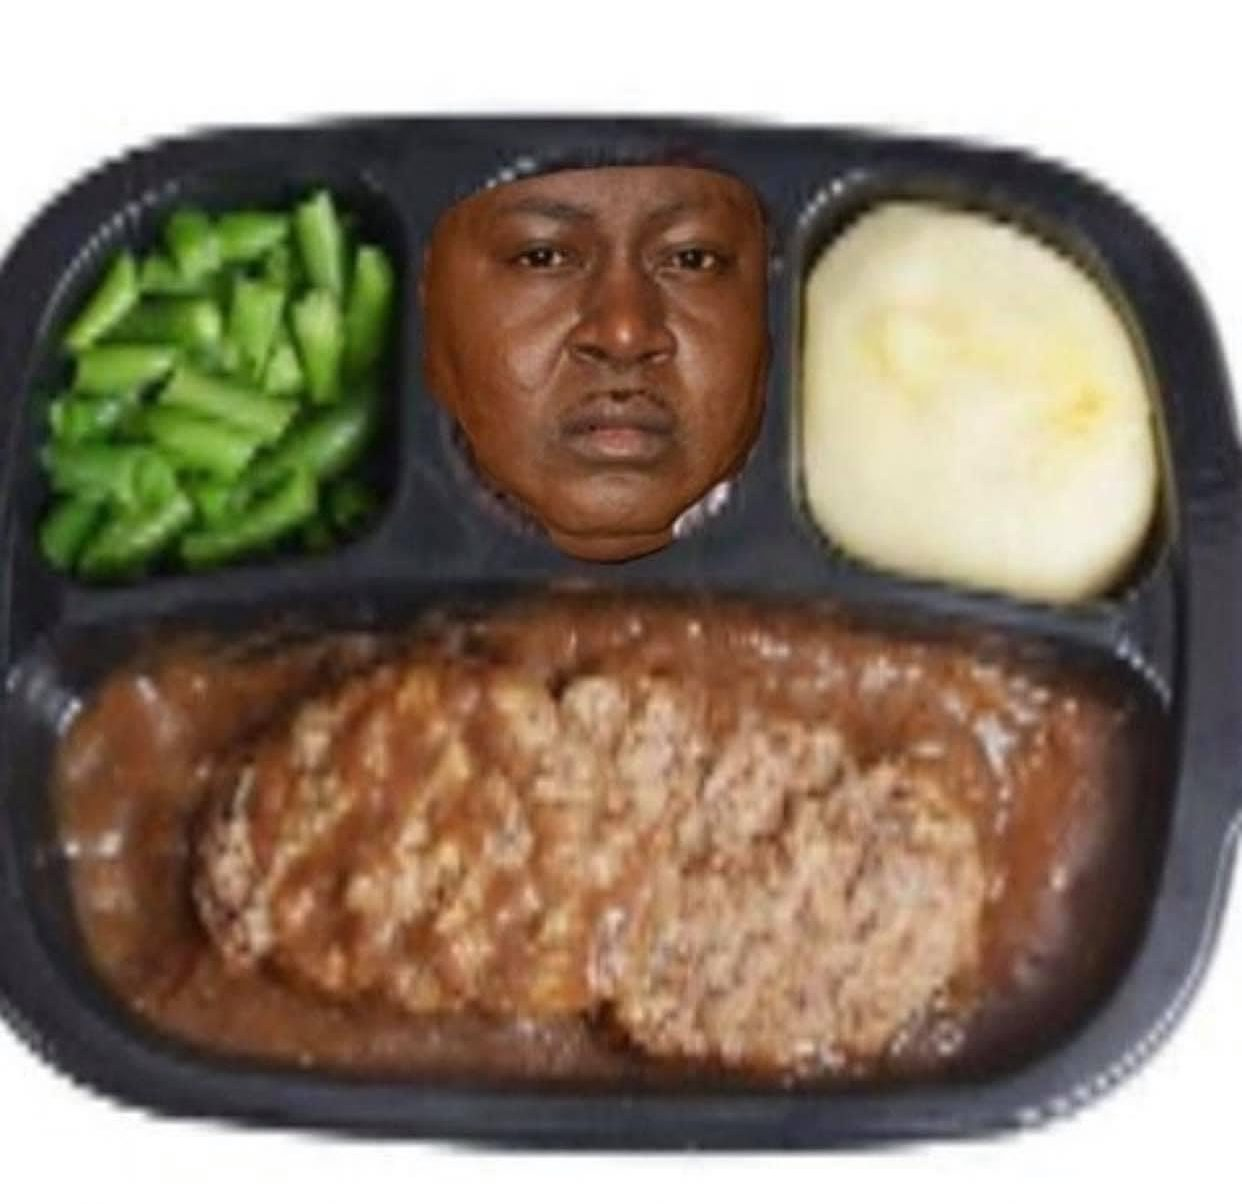 Trick Daddy lunch plate meme